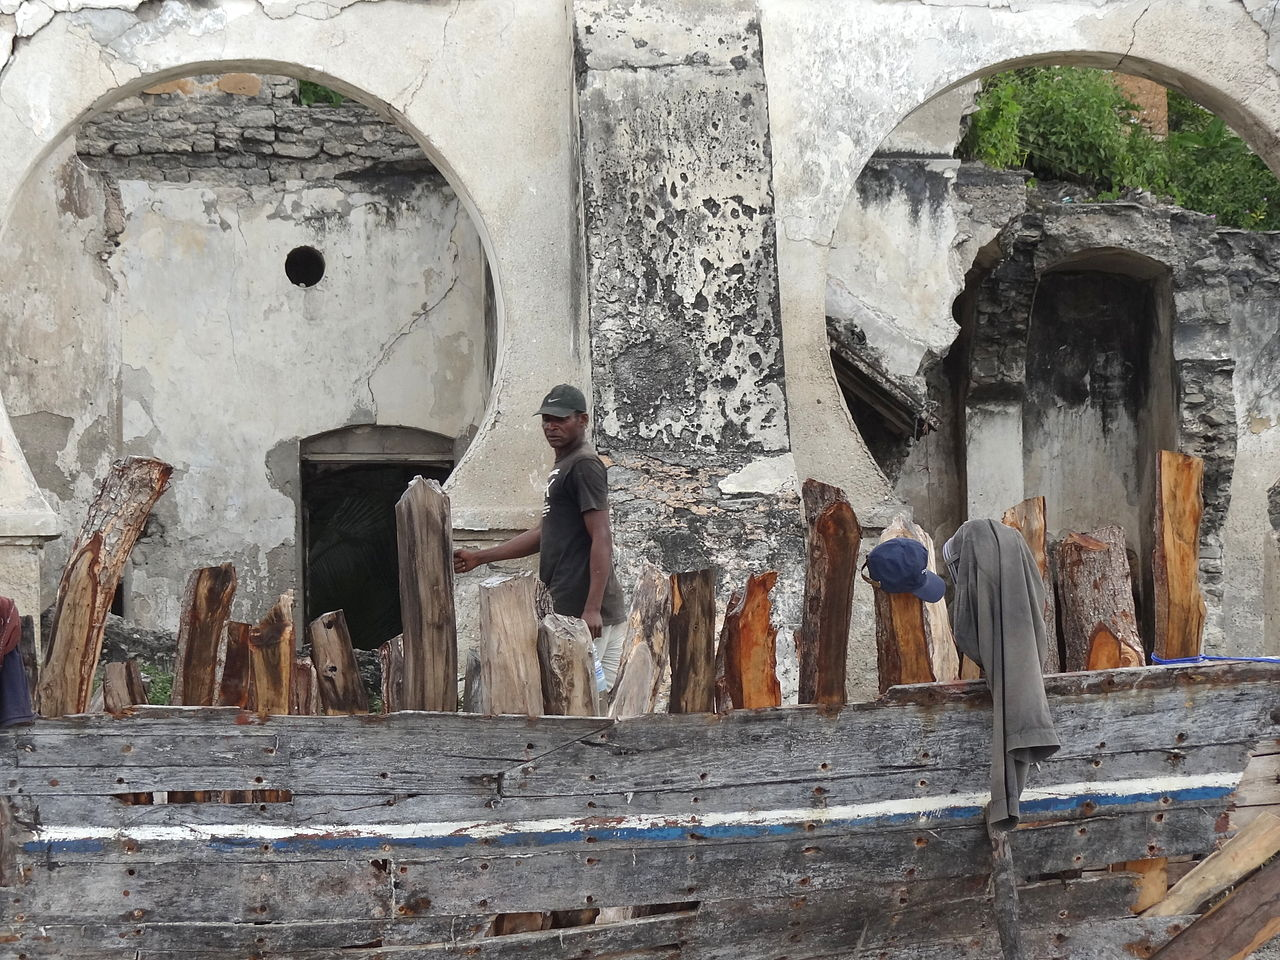 Bagamoyo Tanzania  city pictures gallery : ... under Repair with Passing Man Fishing Port Bagamoyo Tanzania